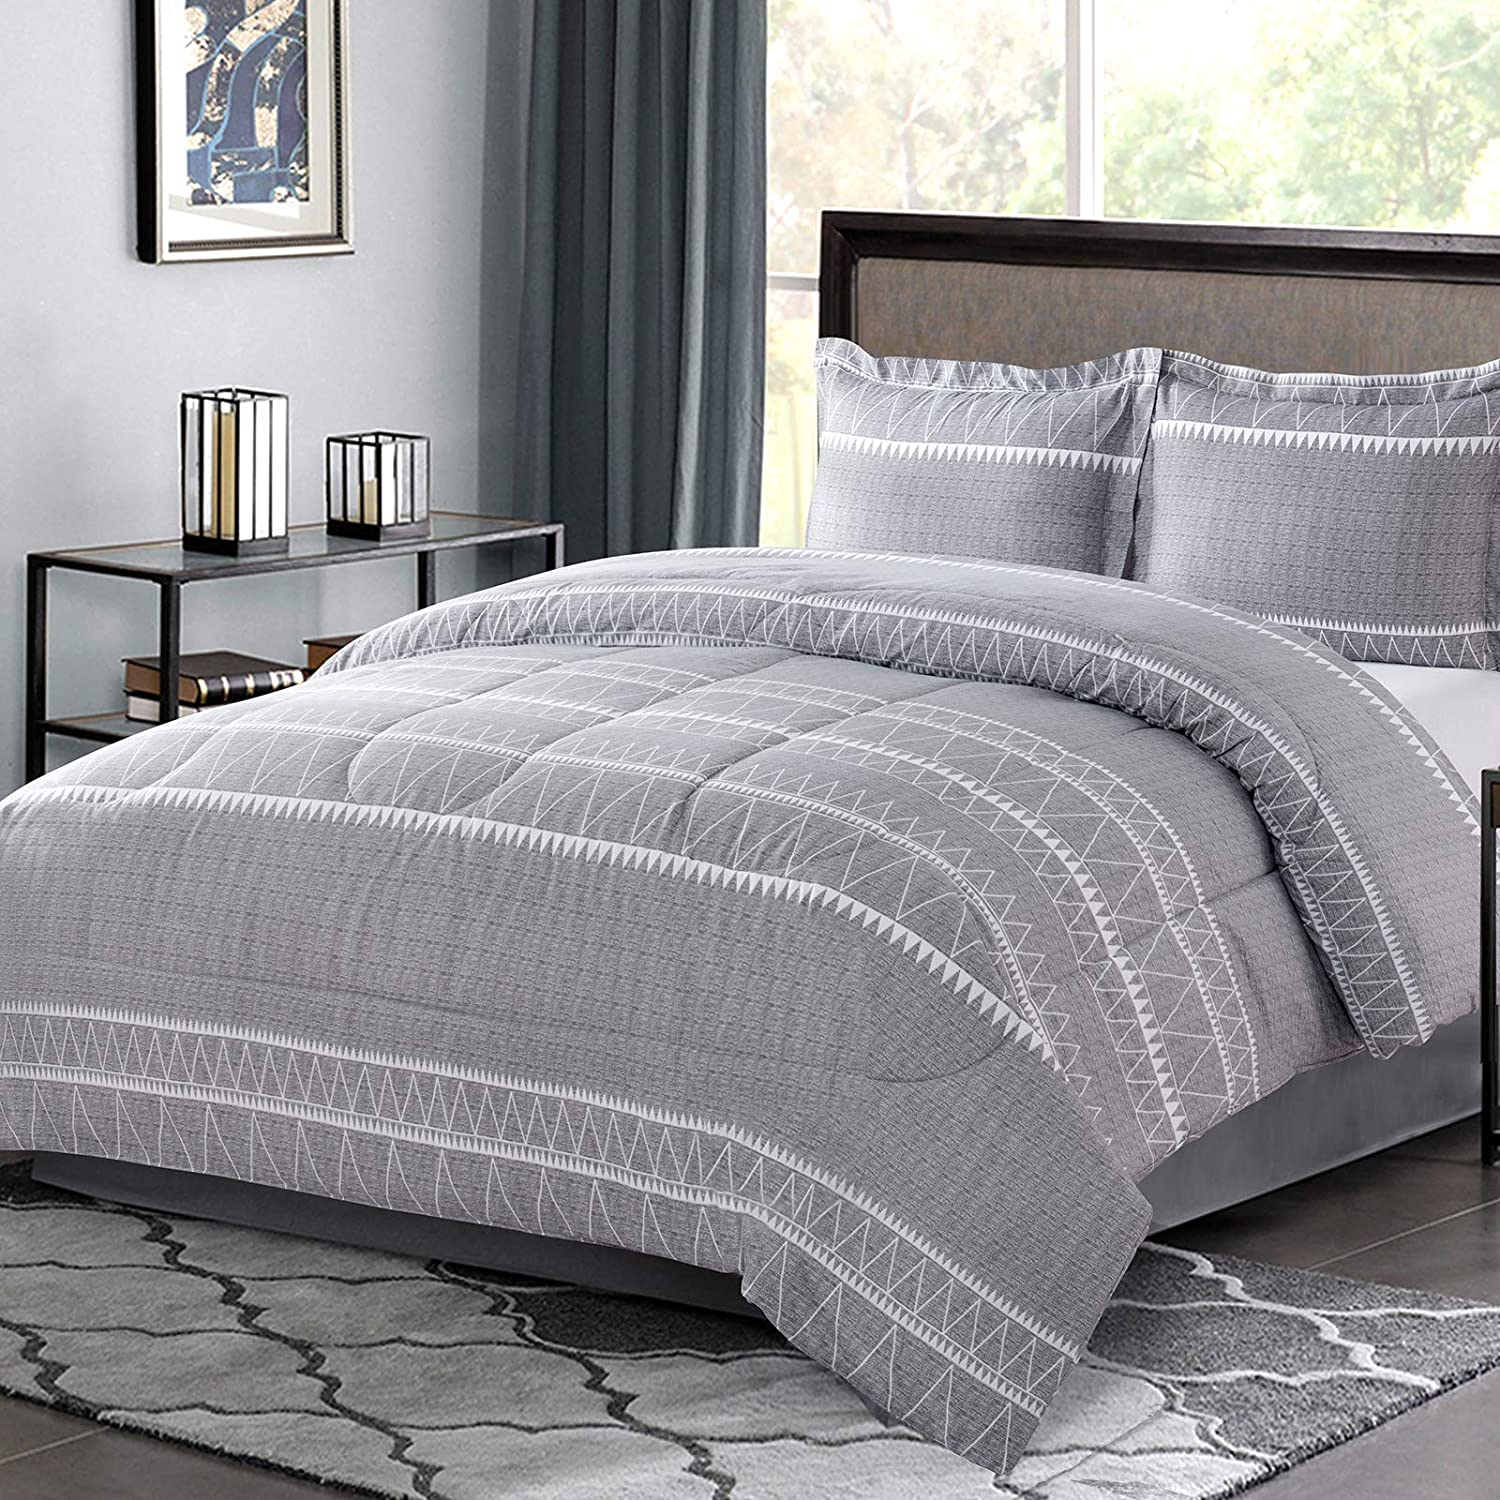 Shatex Bedding Sets Queen with Comforter 3 Pieces Bedding Comforter Sets Queen Size – Ultra Soft 100% Microfiber Polyester – Stripes Pattern Printed Grey Queen Comforter with 2 Pillow Shams